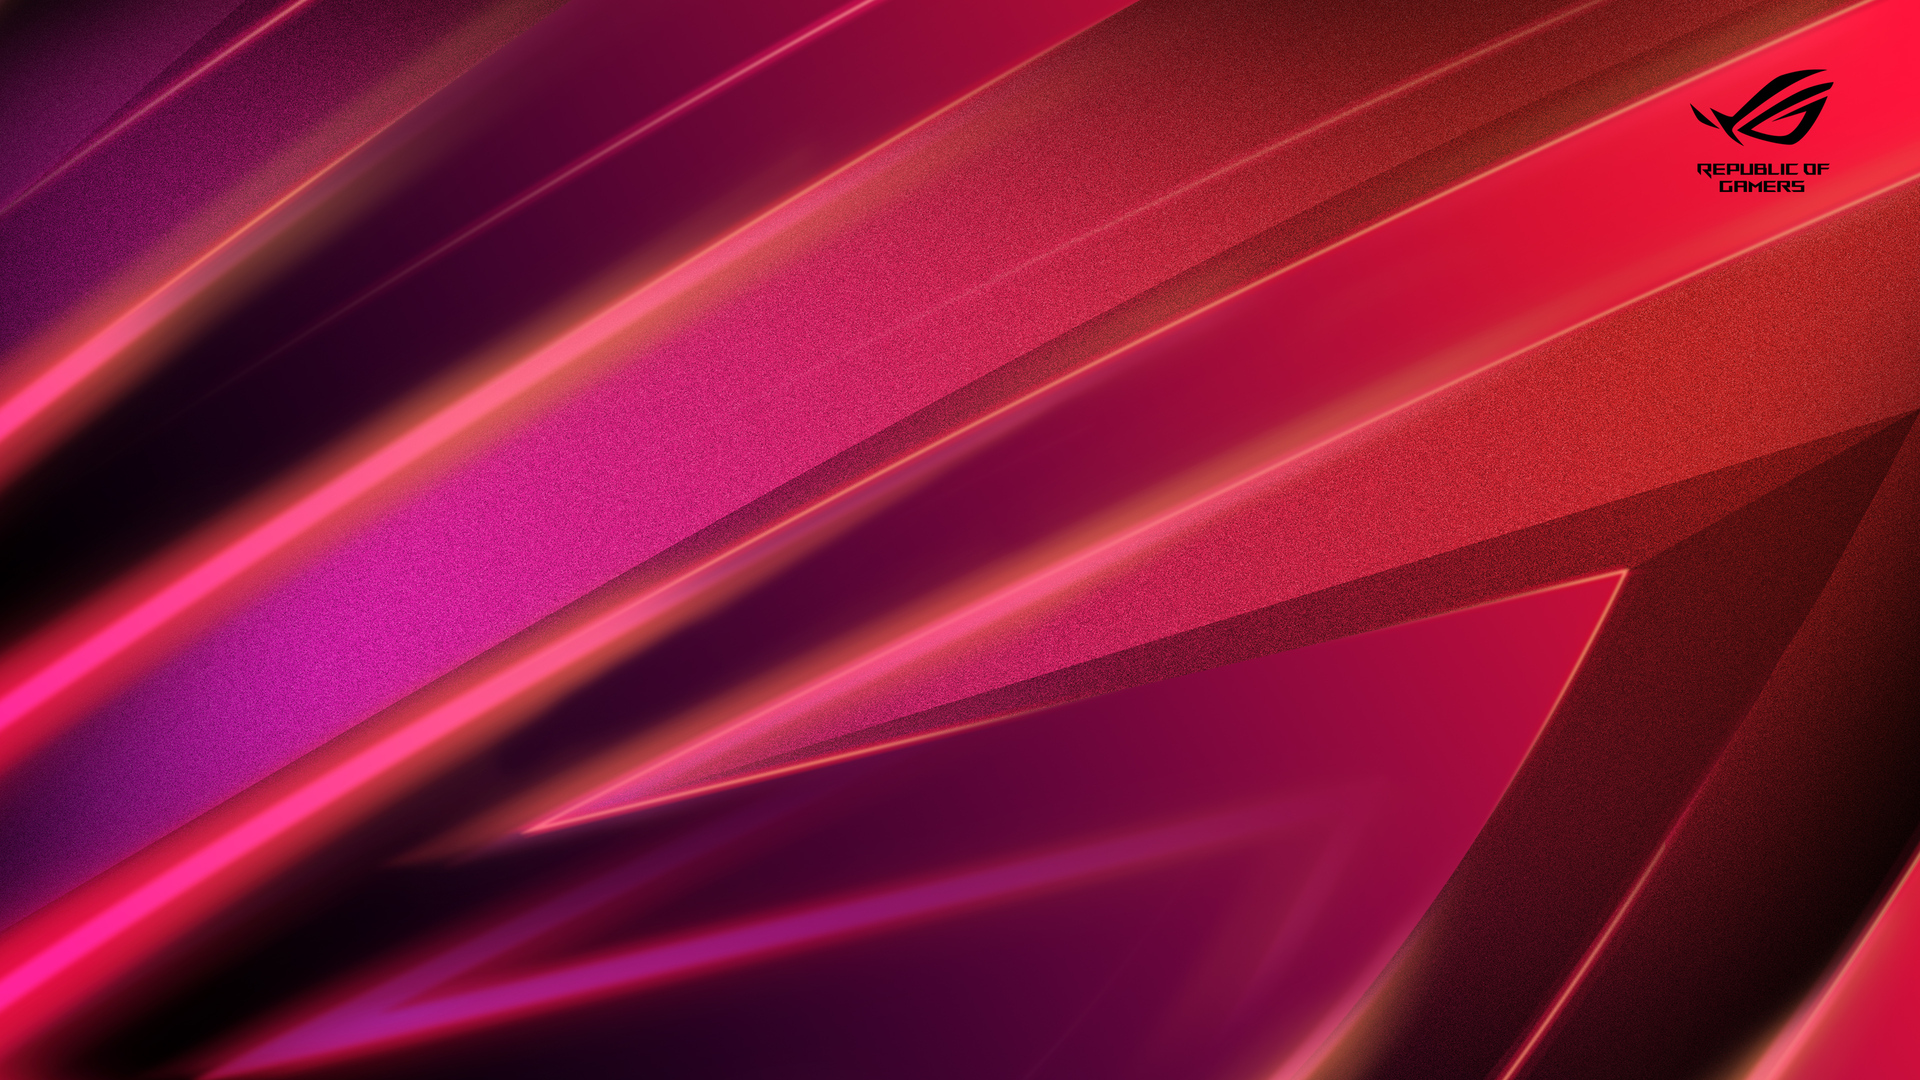 1920x1080 Rog Abstract 4k Laptop Full Hd 1080p Hd 4k